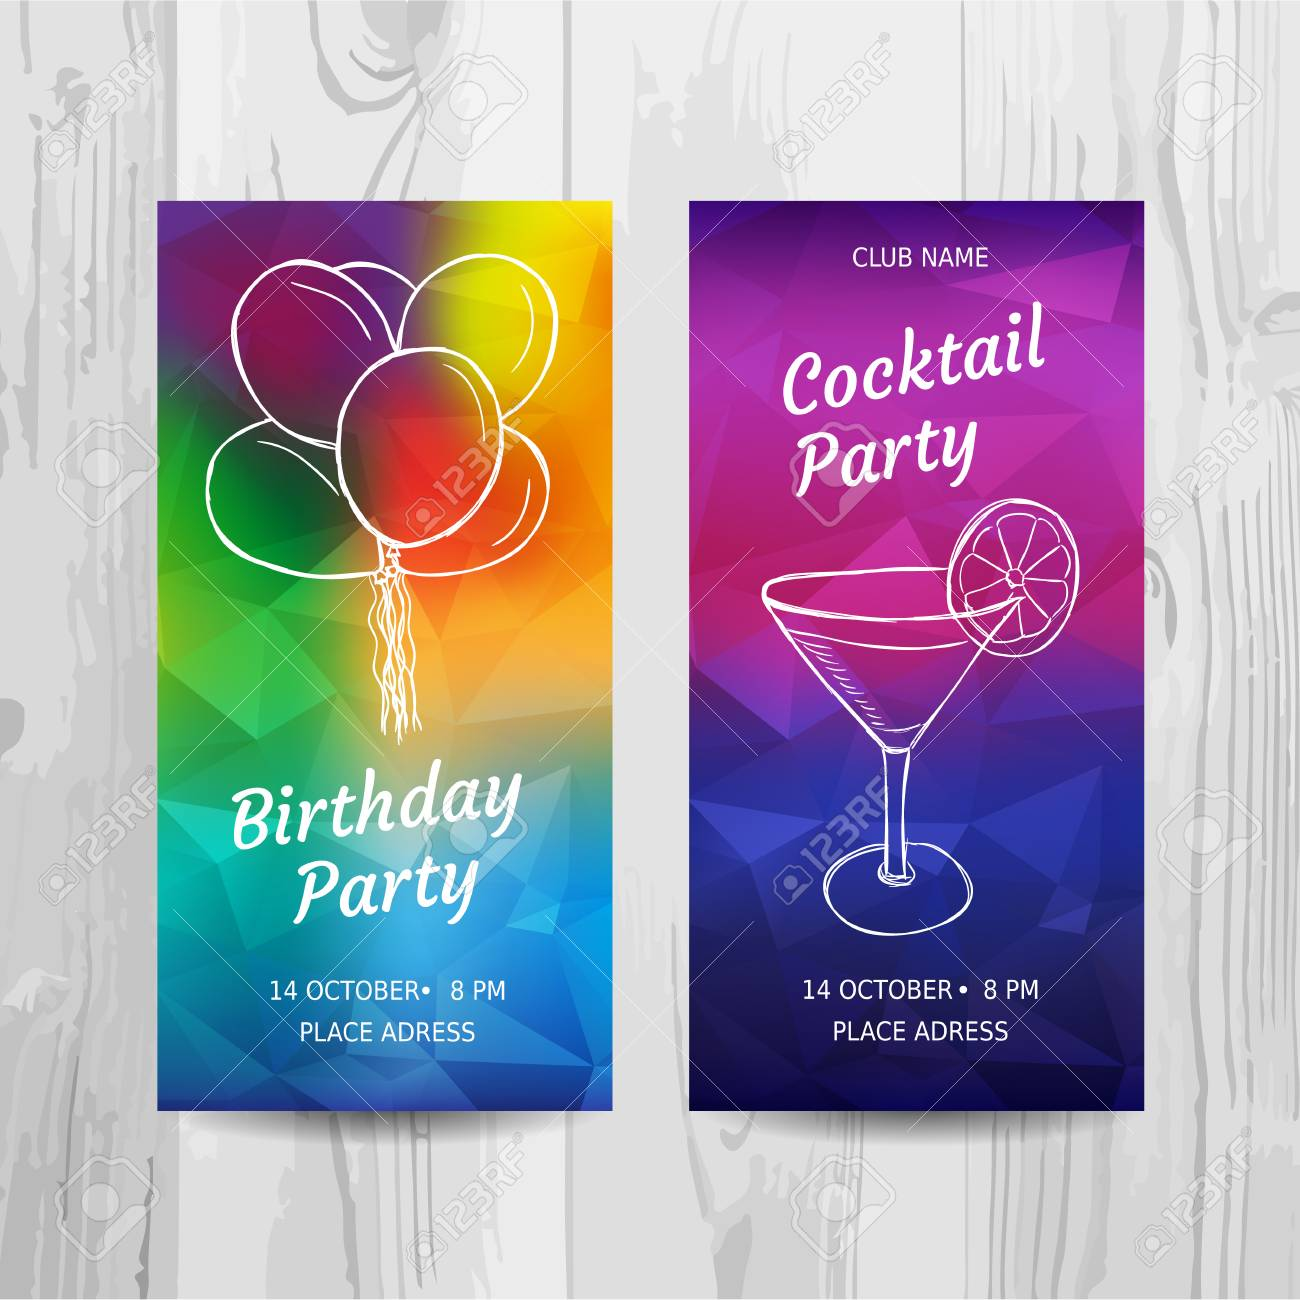 Birthday Party Invitation Card Cocktail Party Flyer Vector